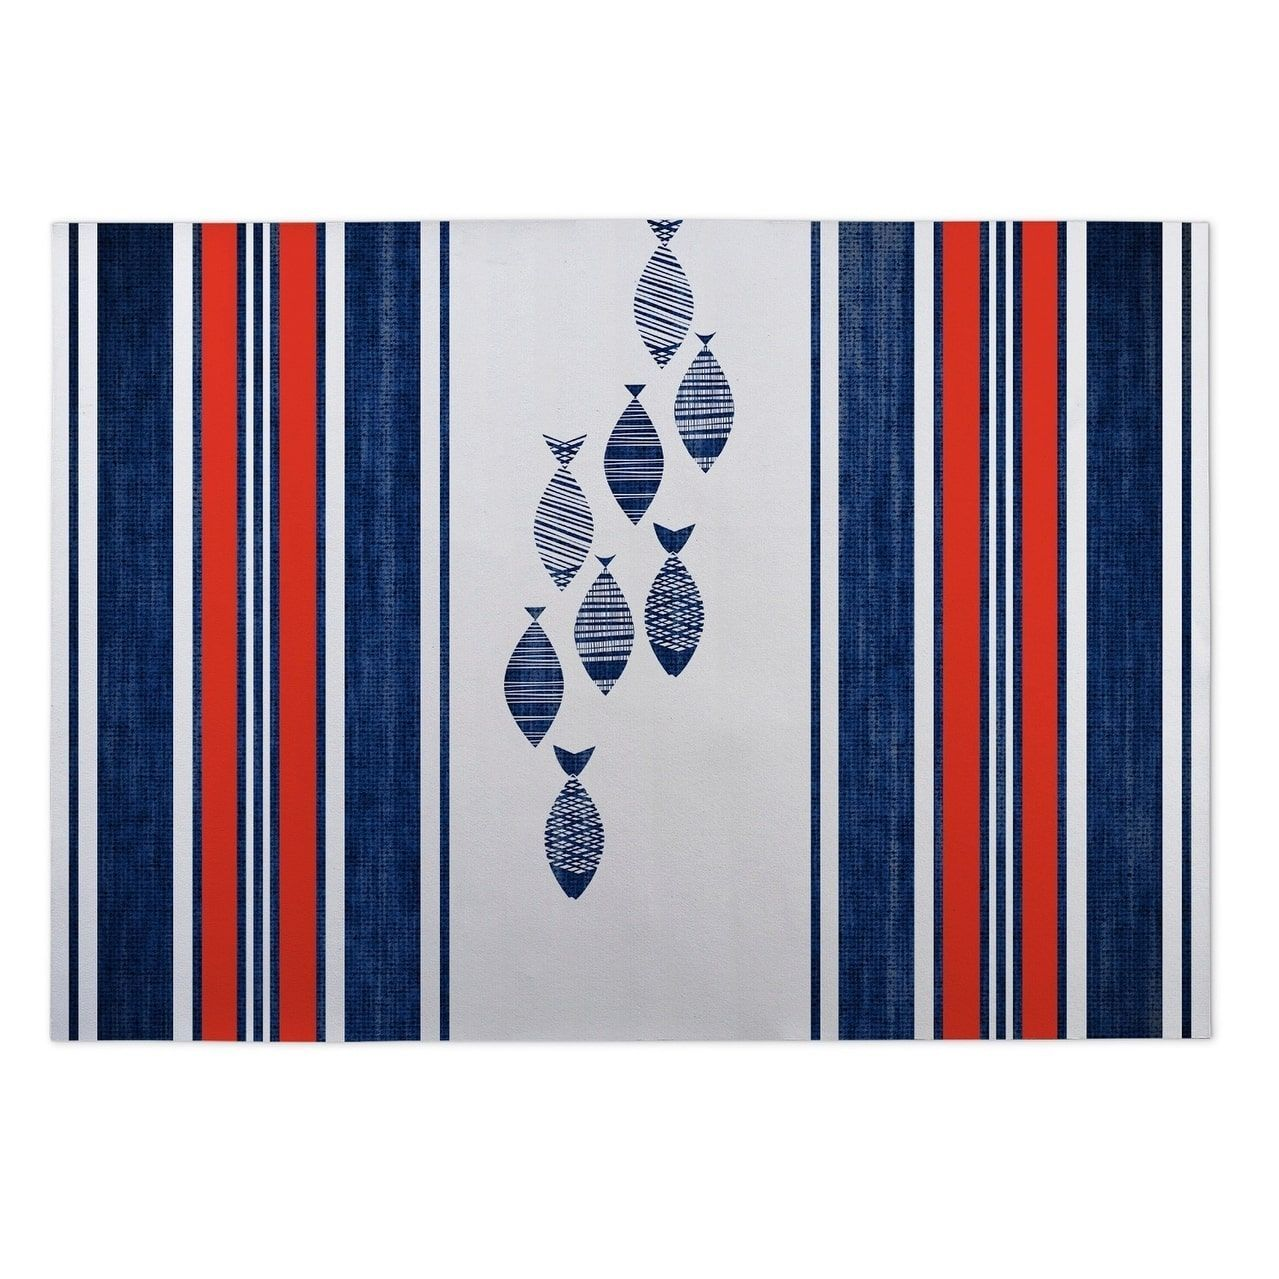 Kavka Designs Blue/Red/White Blue Fish Indoor/Outdoor